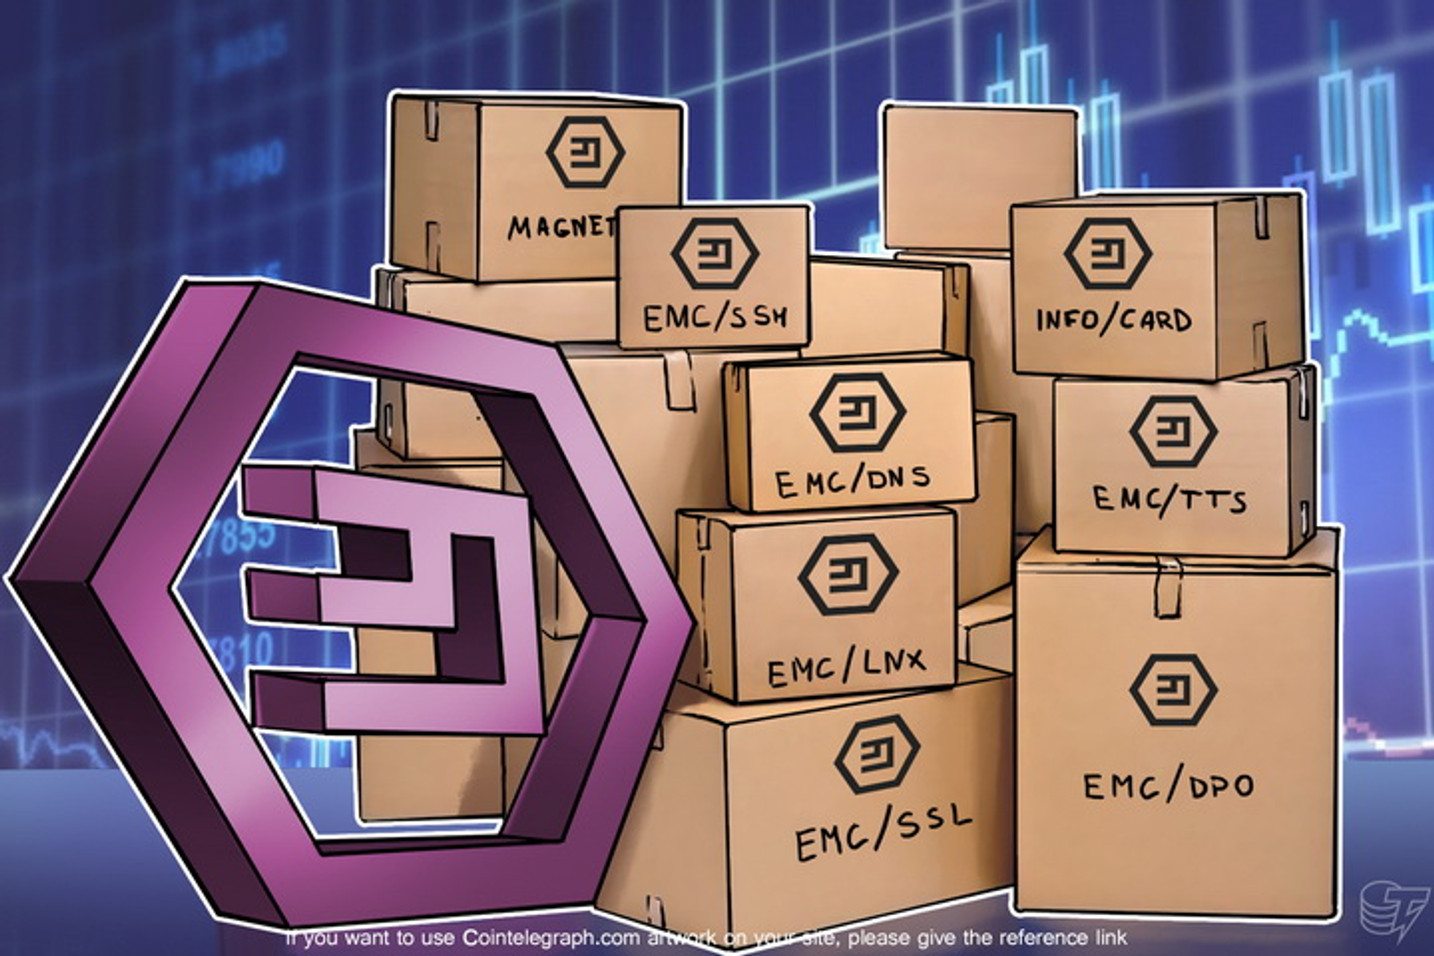 Emercoin and First Bitcoin Capital Corp. Sign Strategic Evaluation Agreement